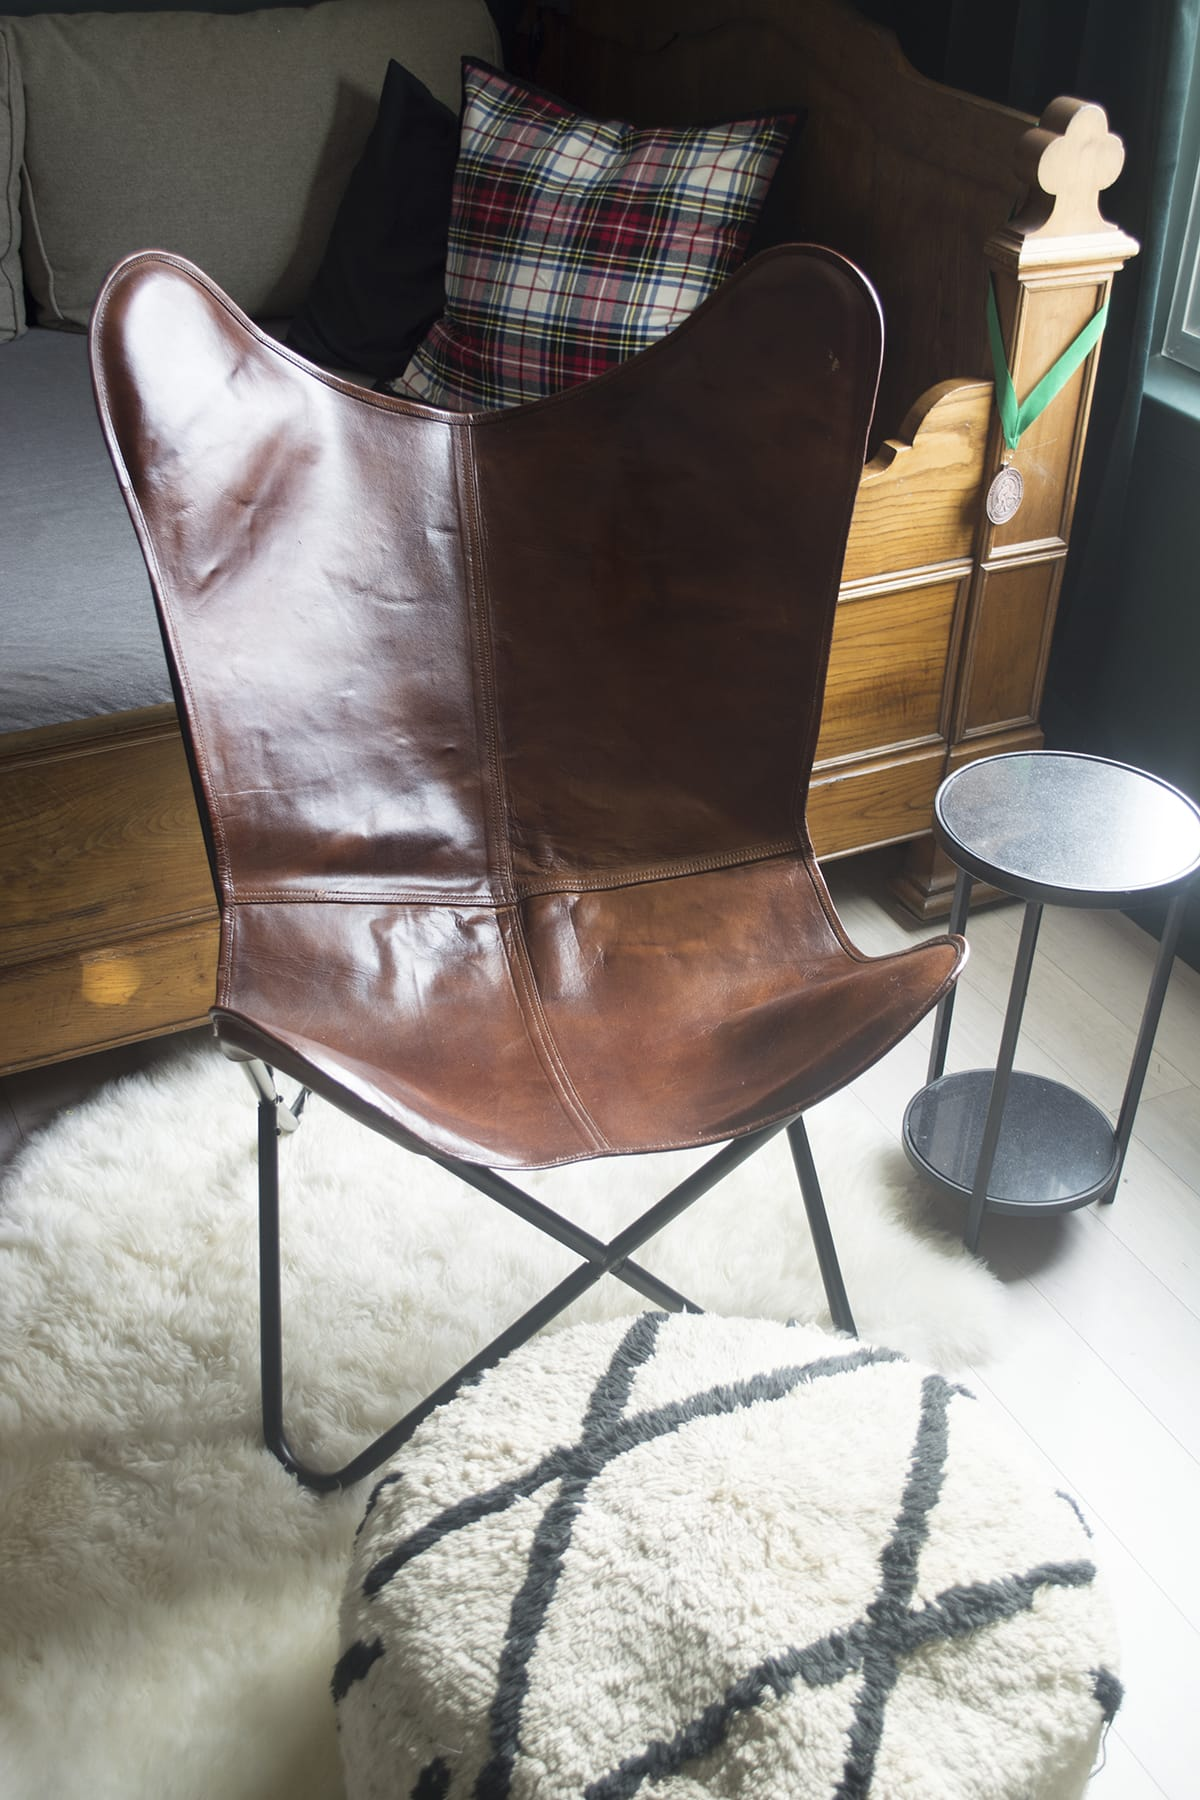 leather furnishings hide travel butterfly decor home iron furniture with accessories zoom white black cow and frame lighting chair